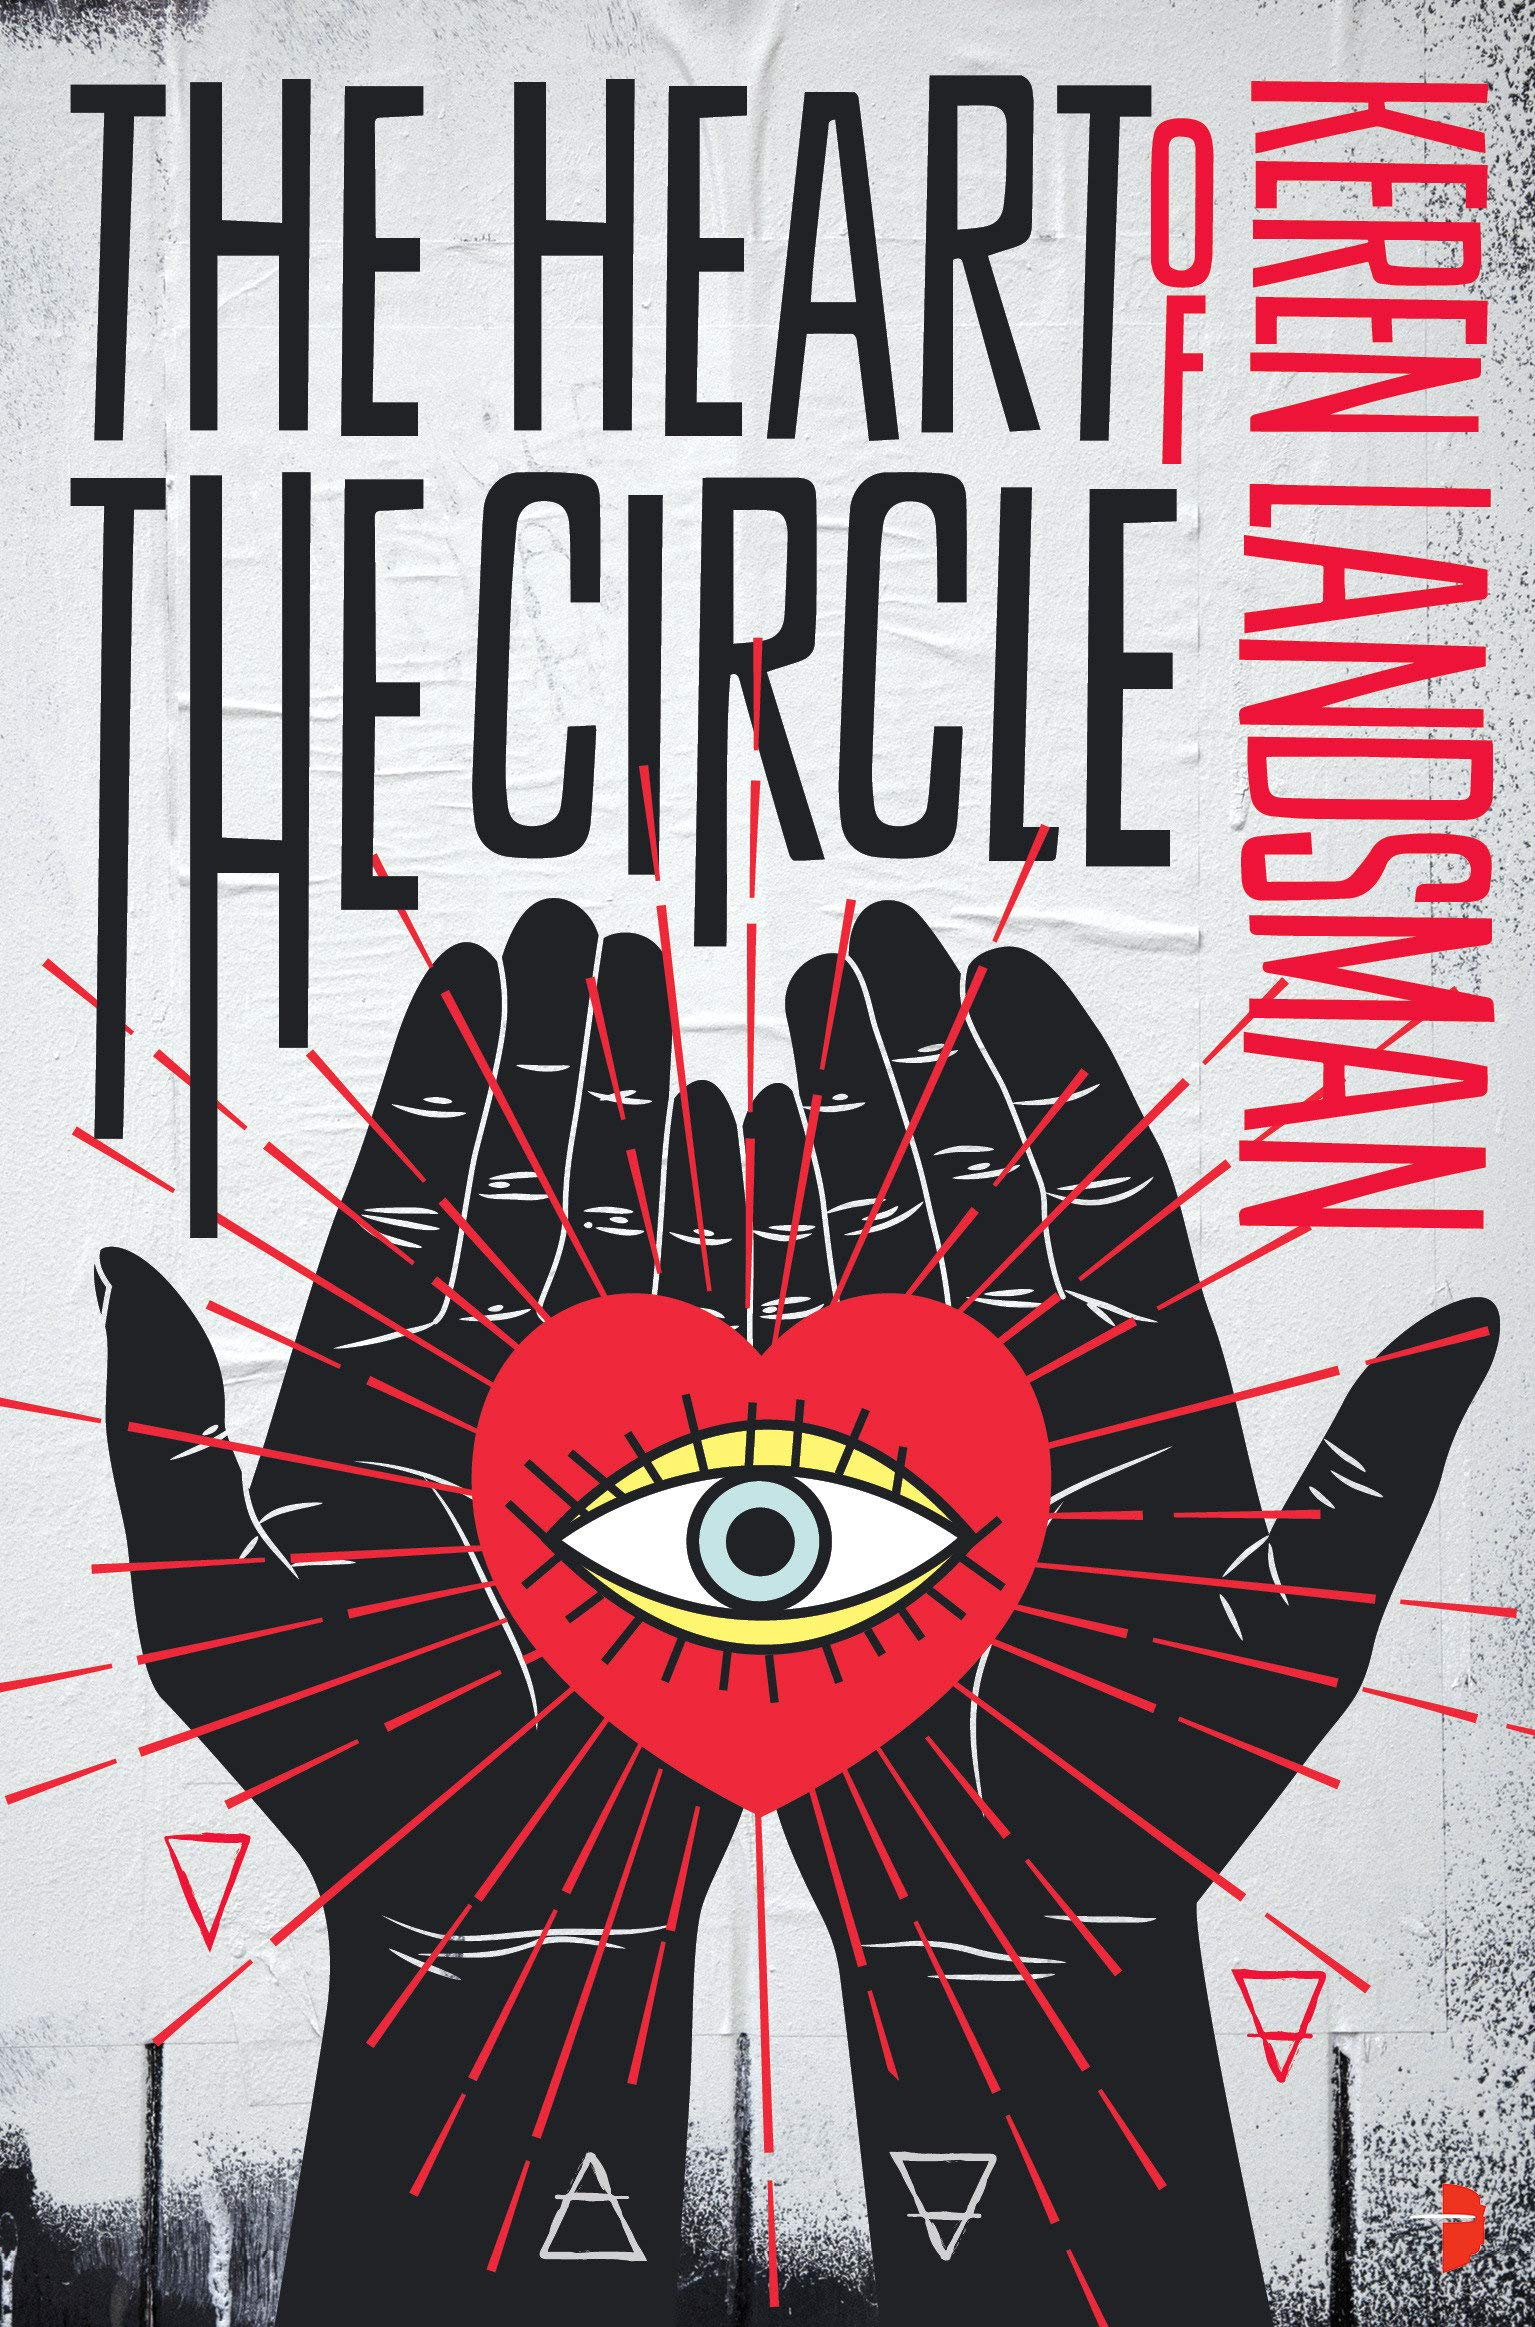 Title:  The Heart of the Circle , Author: Keren Landsman, Publisher: Angry Robot, Publish Date: August 13, 2019; Genres + Tags: YA, Young Adult, Fantasy, Sci-Fi, Science Fiction, Sci-Fi/Fantasy, Romance, LGBT, Cultural Diversity, Israel